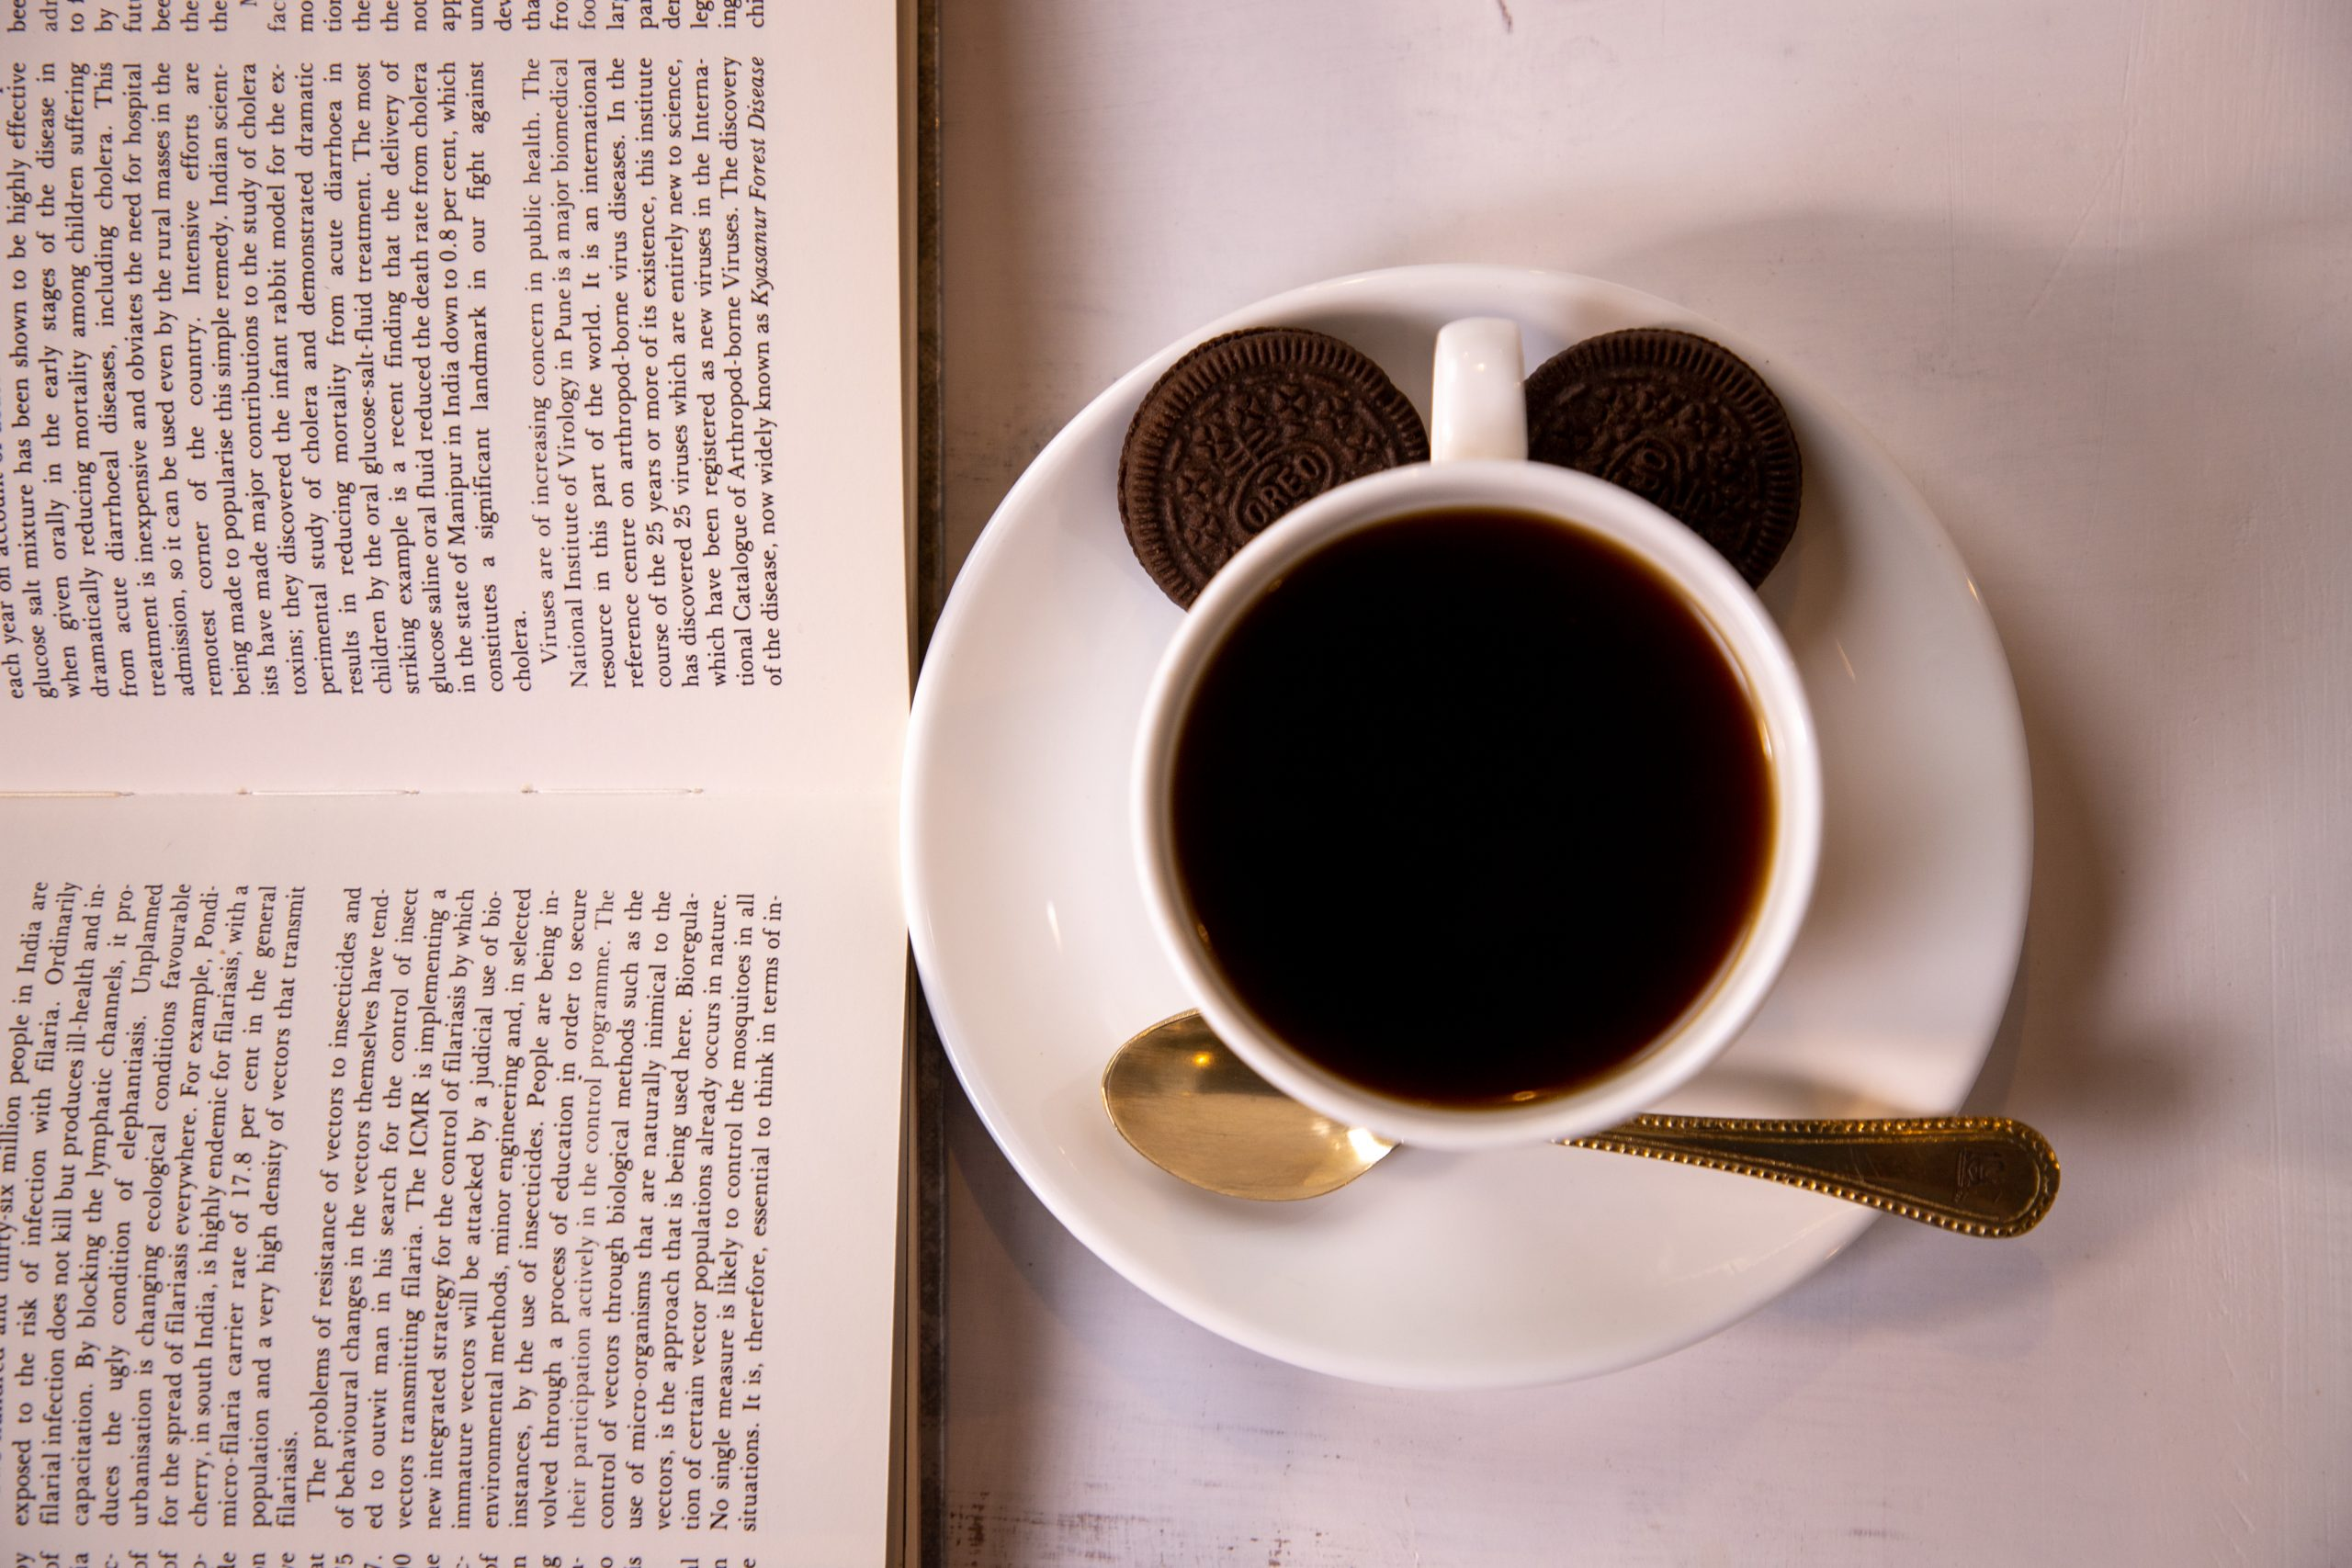 Black coffee with Oreo and a good book.